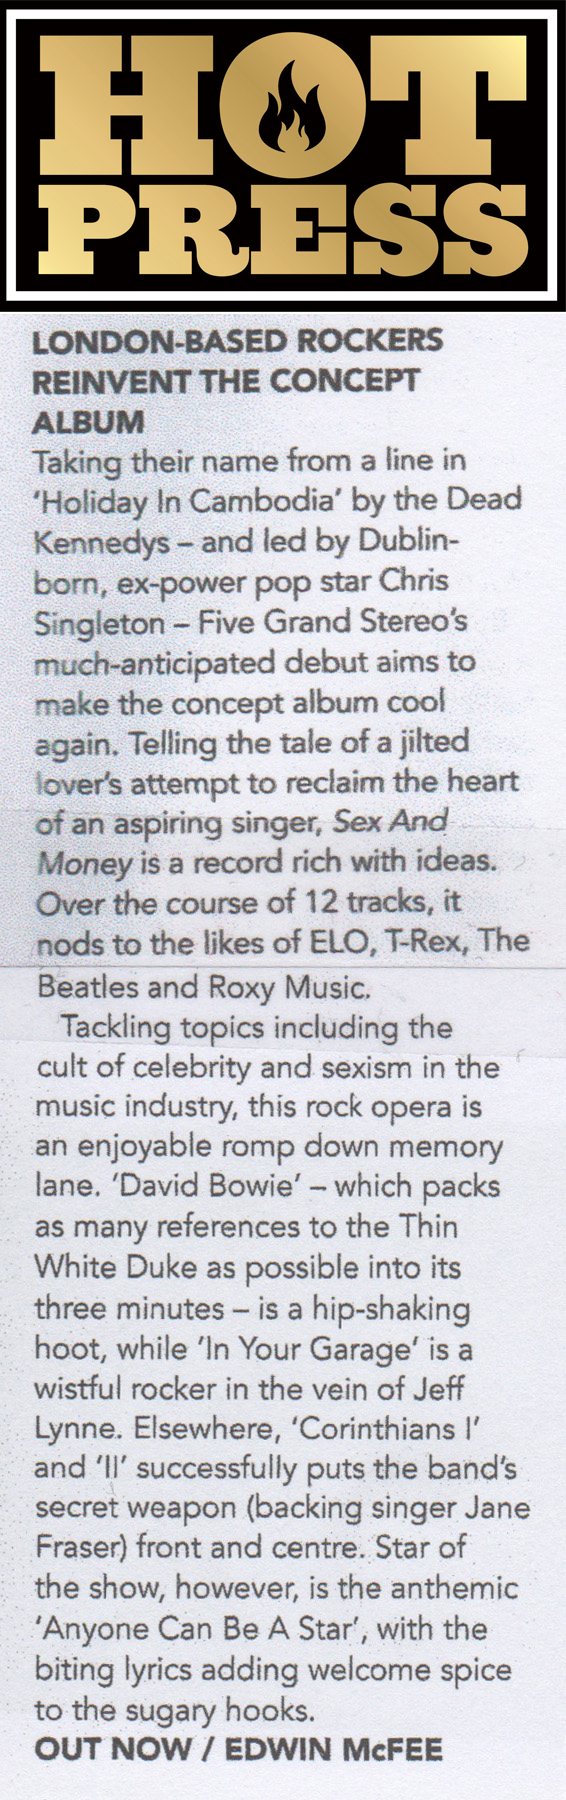 Hotpress review of 'Sex and Money'